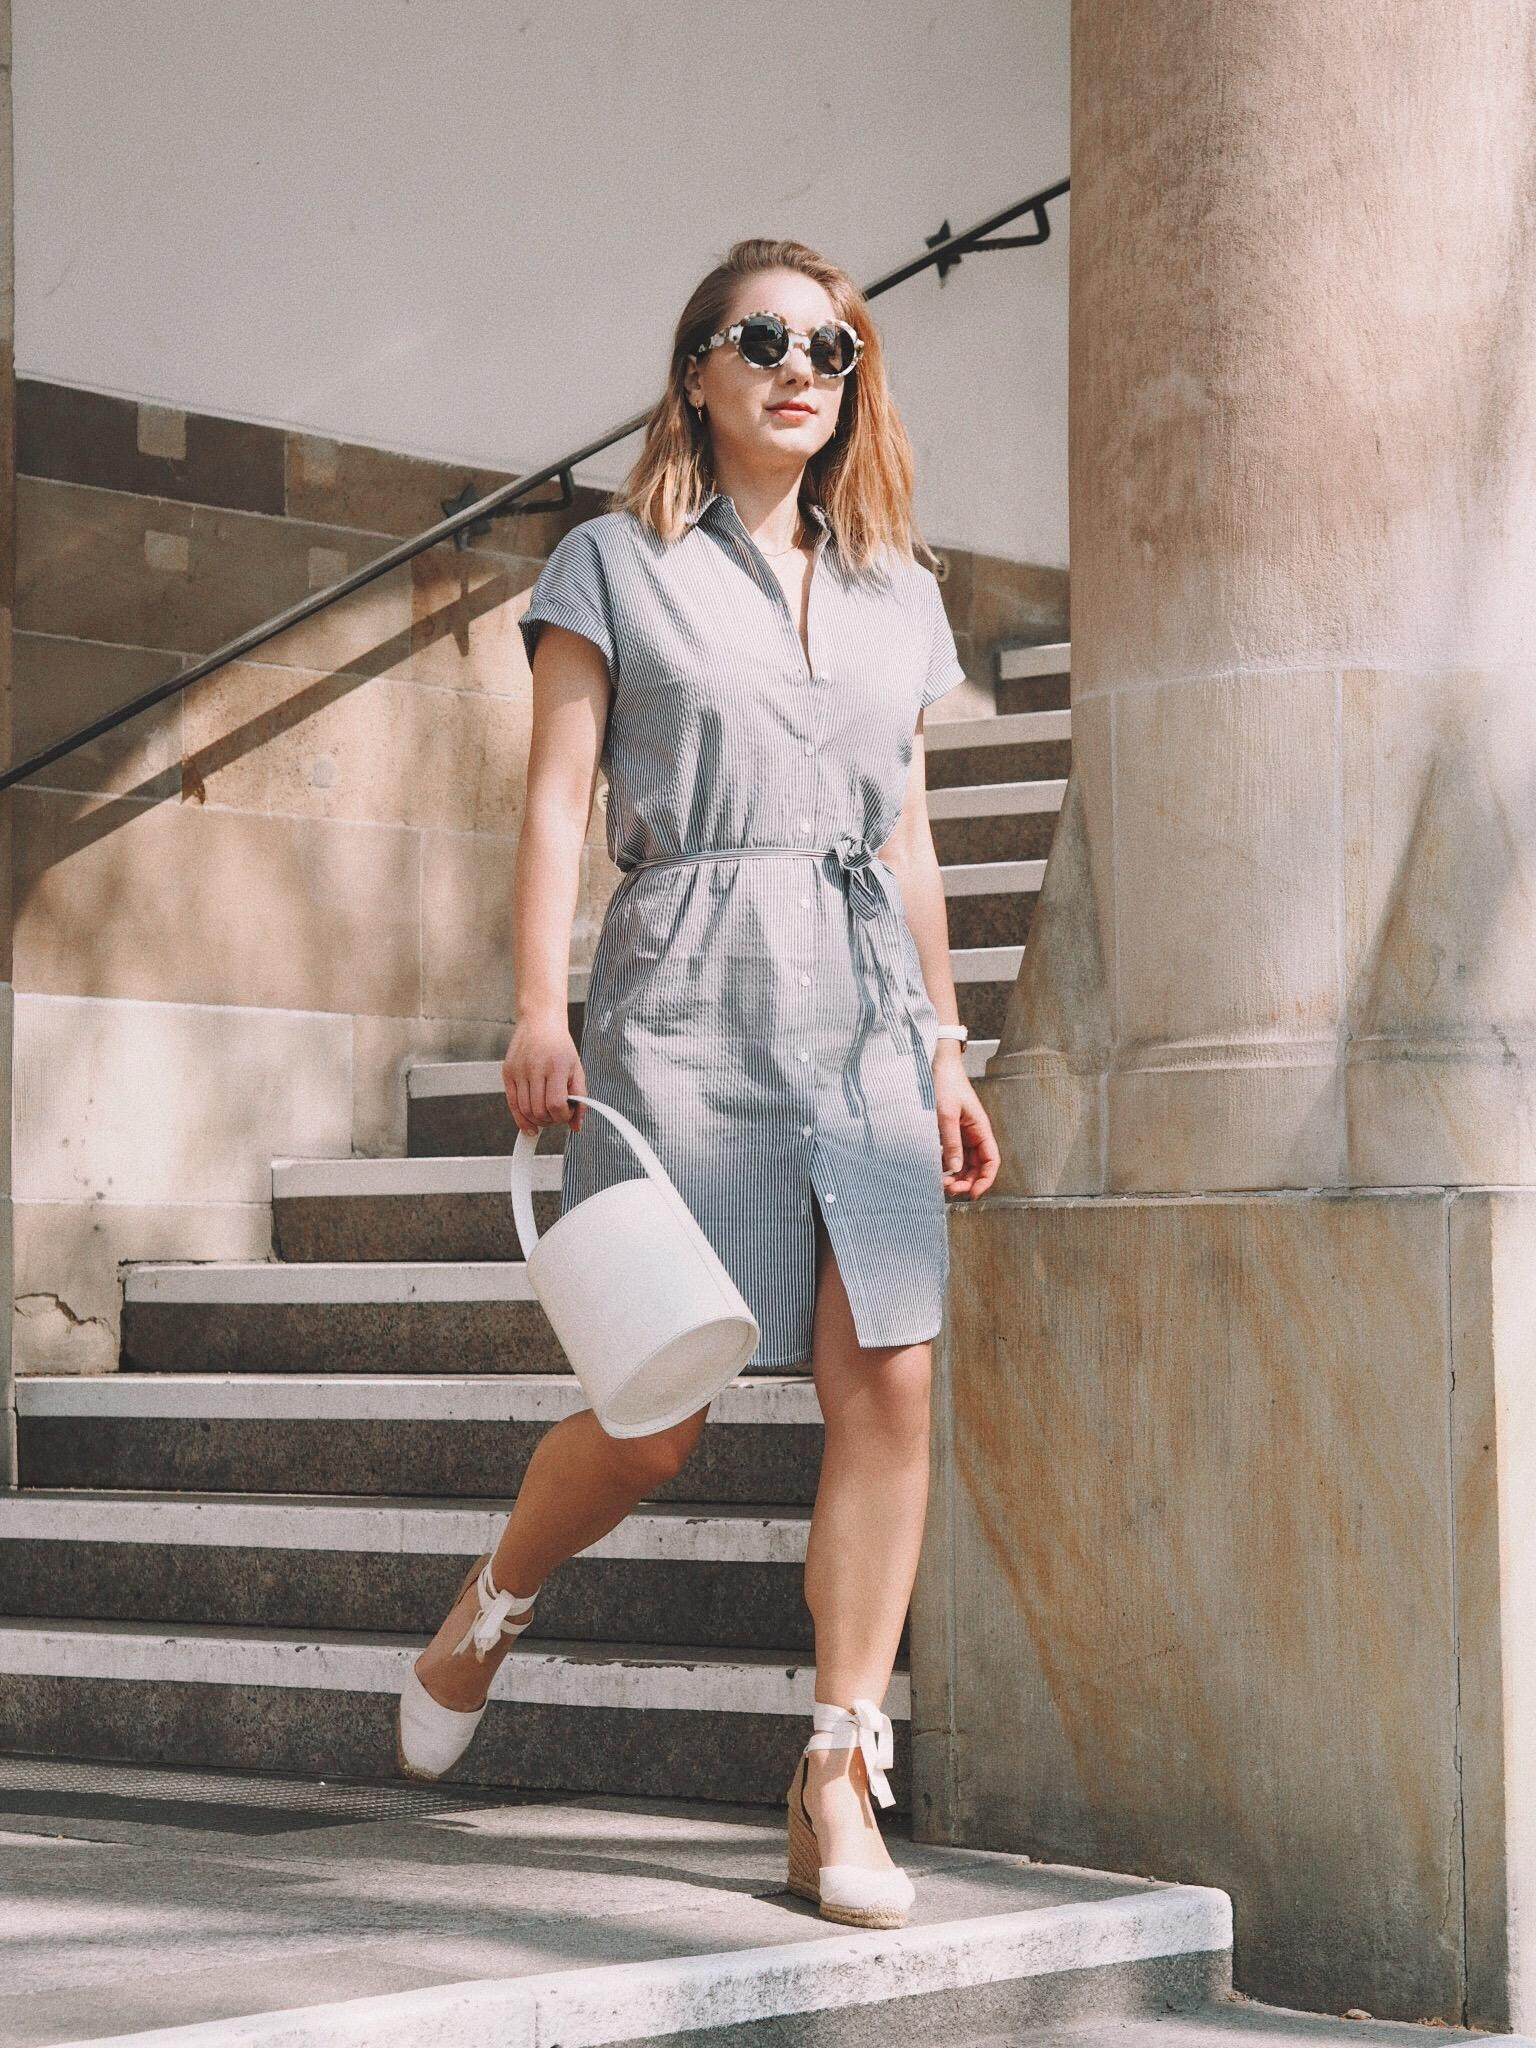 Spring feelings #bucketbag #shirtdress #castaner #springlook #ootd